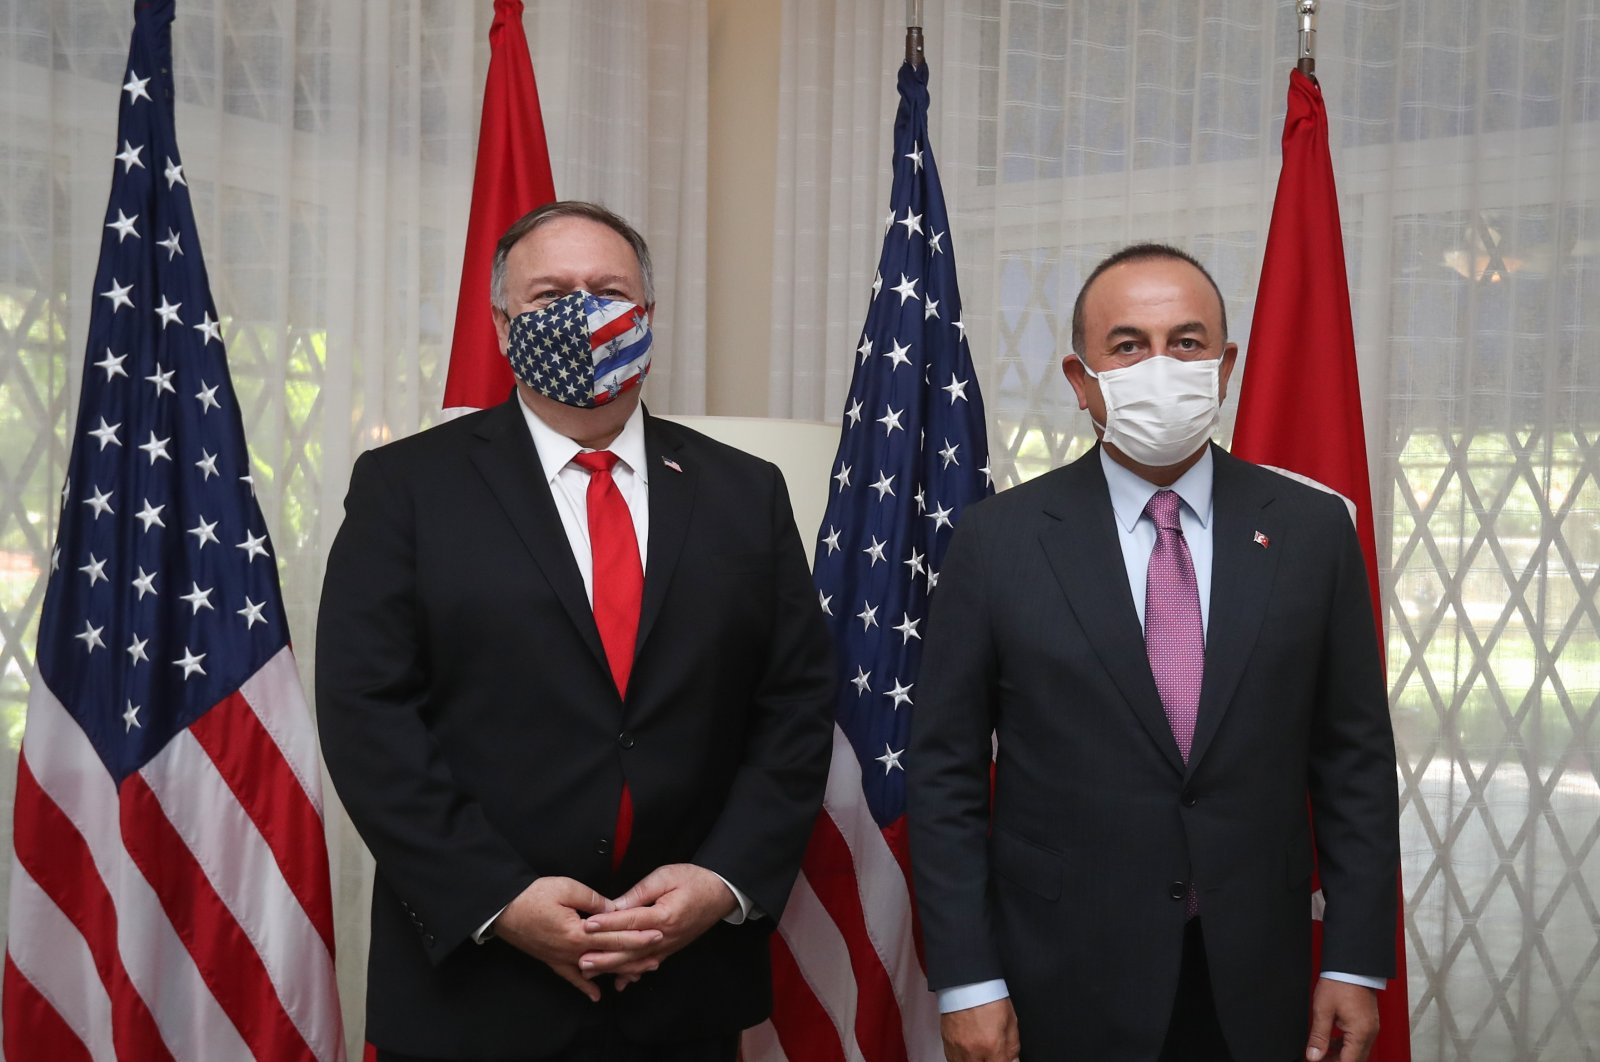 Foreign Minister Mevlüt Çavuşoğlu (R) and U.S. Secretary of State Mike Pompeo pose at a meeting in Santo Domingo, Dominican Republic, Aug. 16, 2020. (AA Photo)